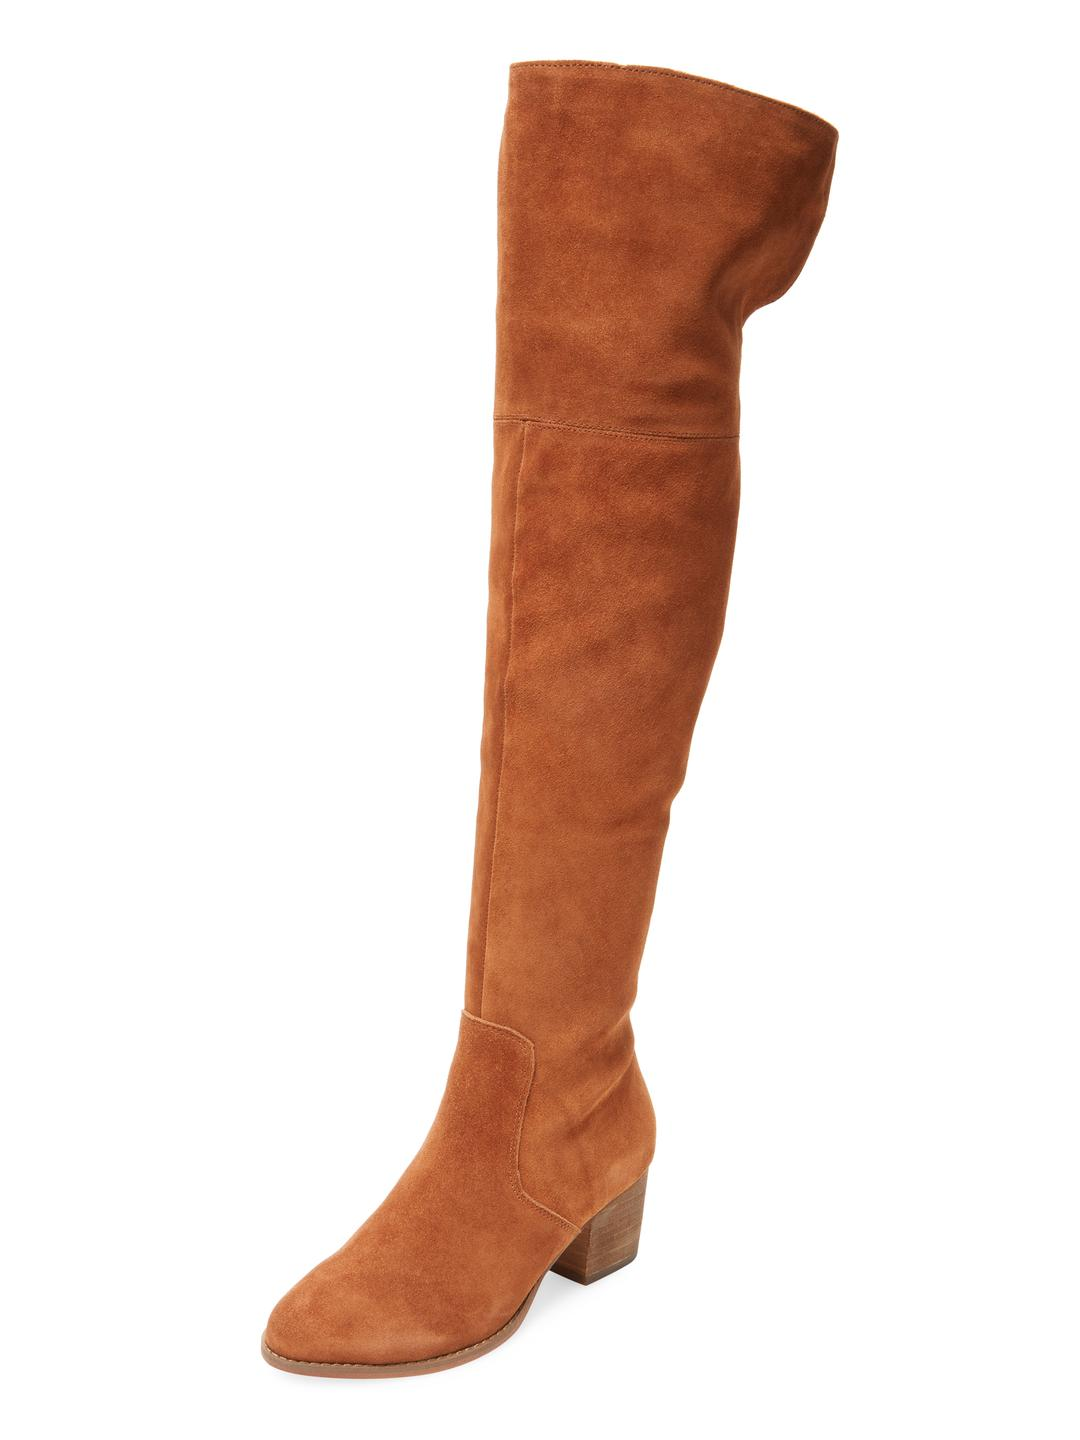 outlet order Corso Como Hoboken Suede Boot real for sale discount store sale perfect upR4s1sP7G